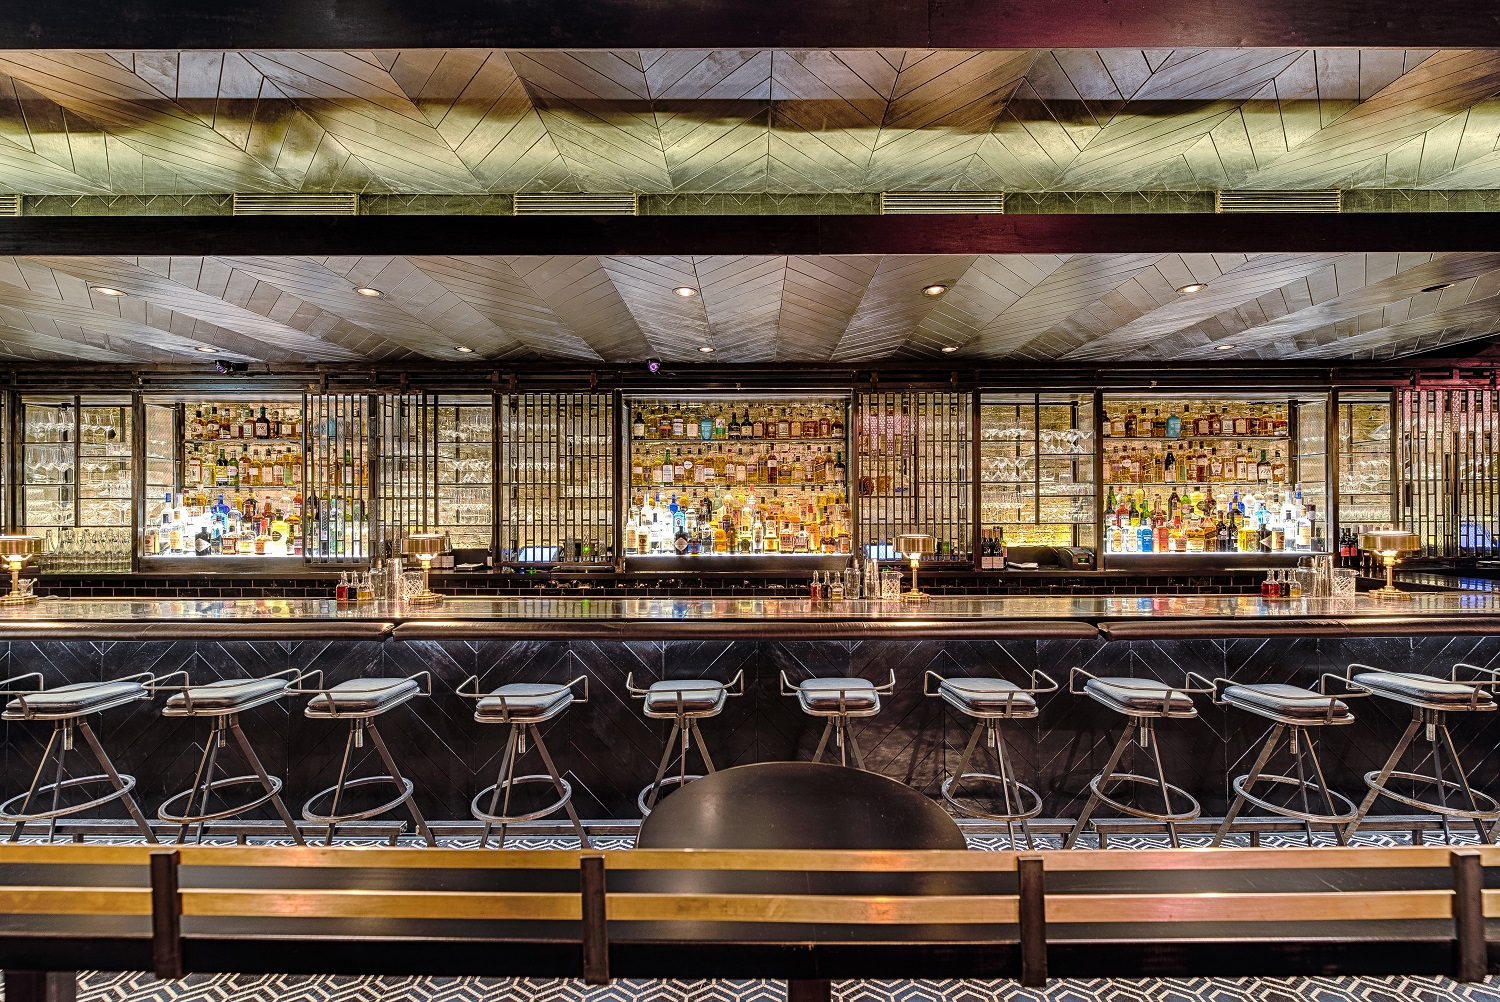 studio-saint-bars-and-restaurants-denson-washington-dc-1